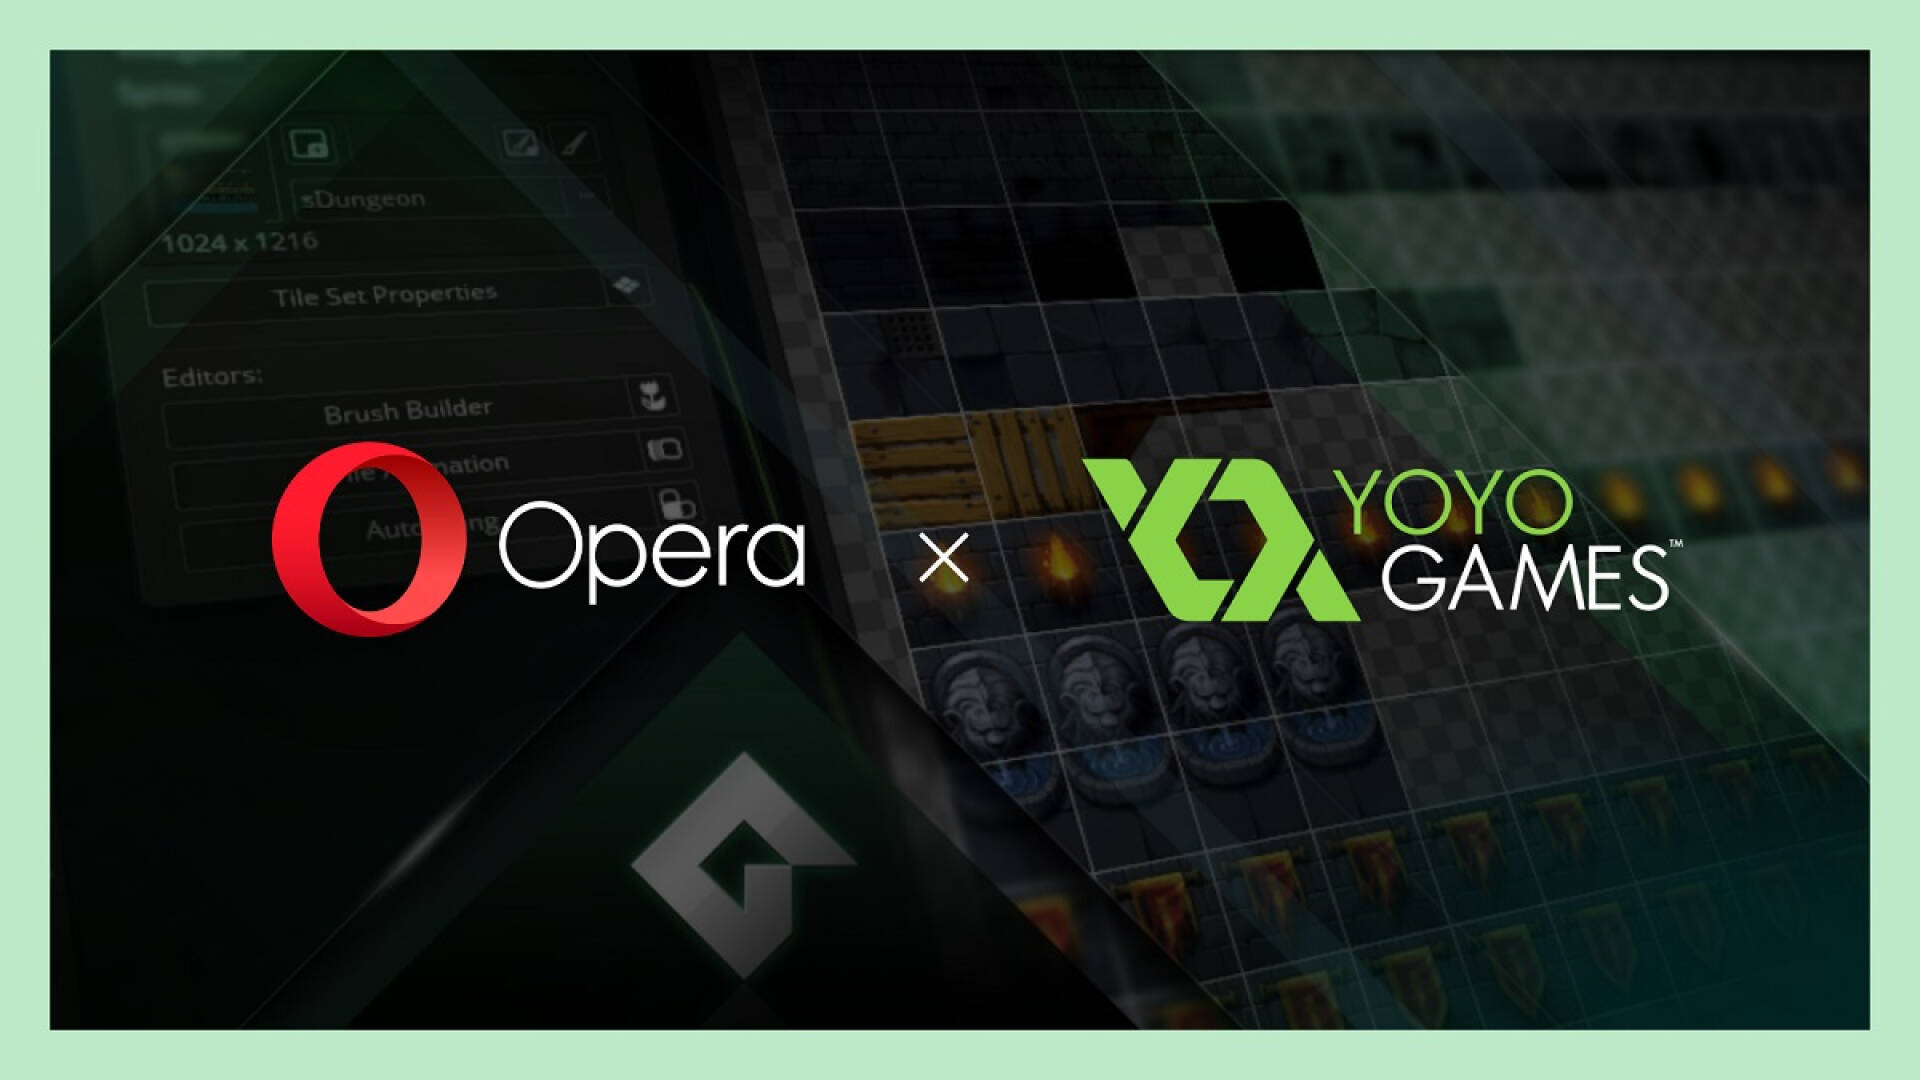 Opera browser acquires a well-known studio and enters video games